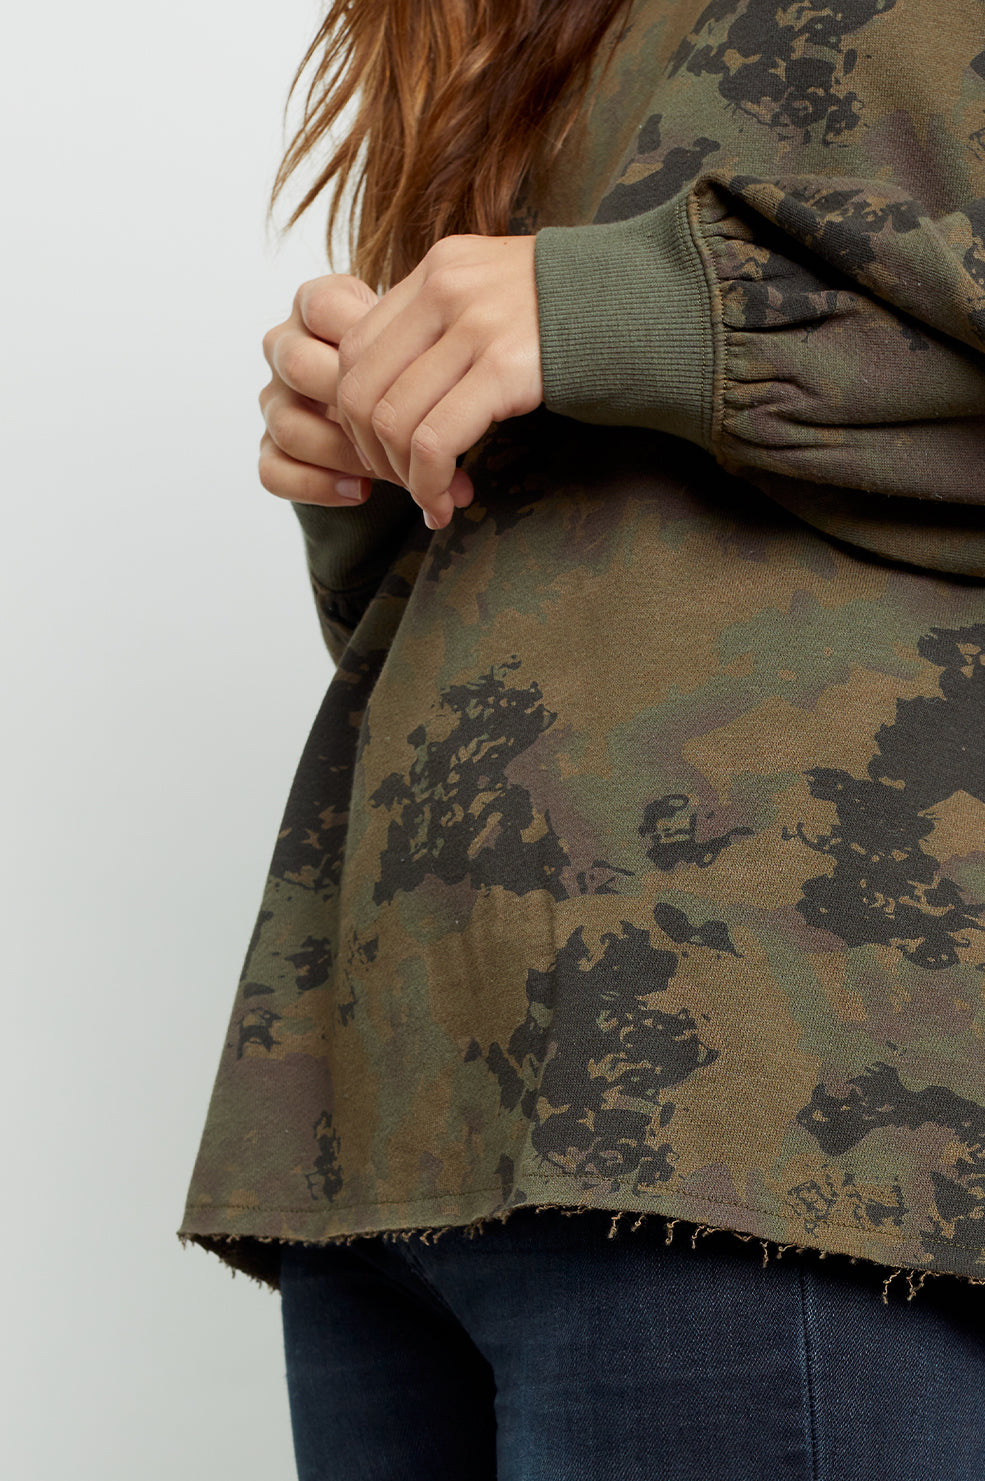 reeves knox camo sweatshirt close-up